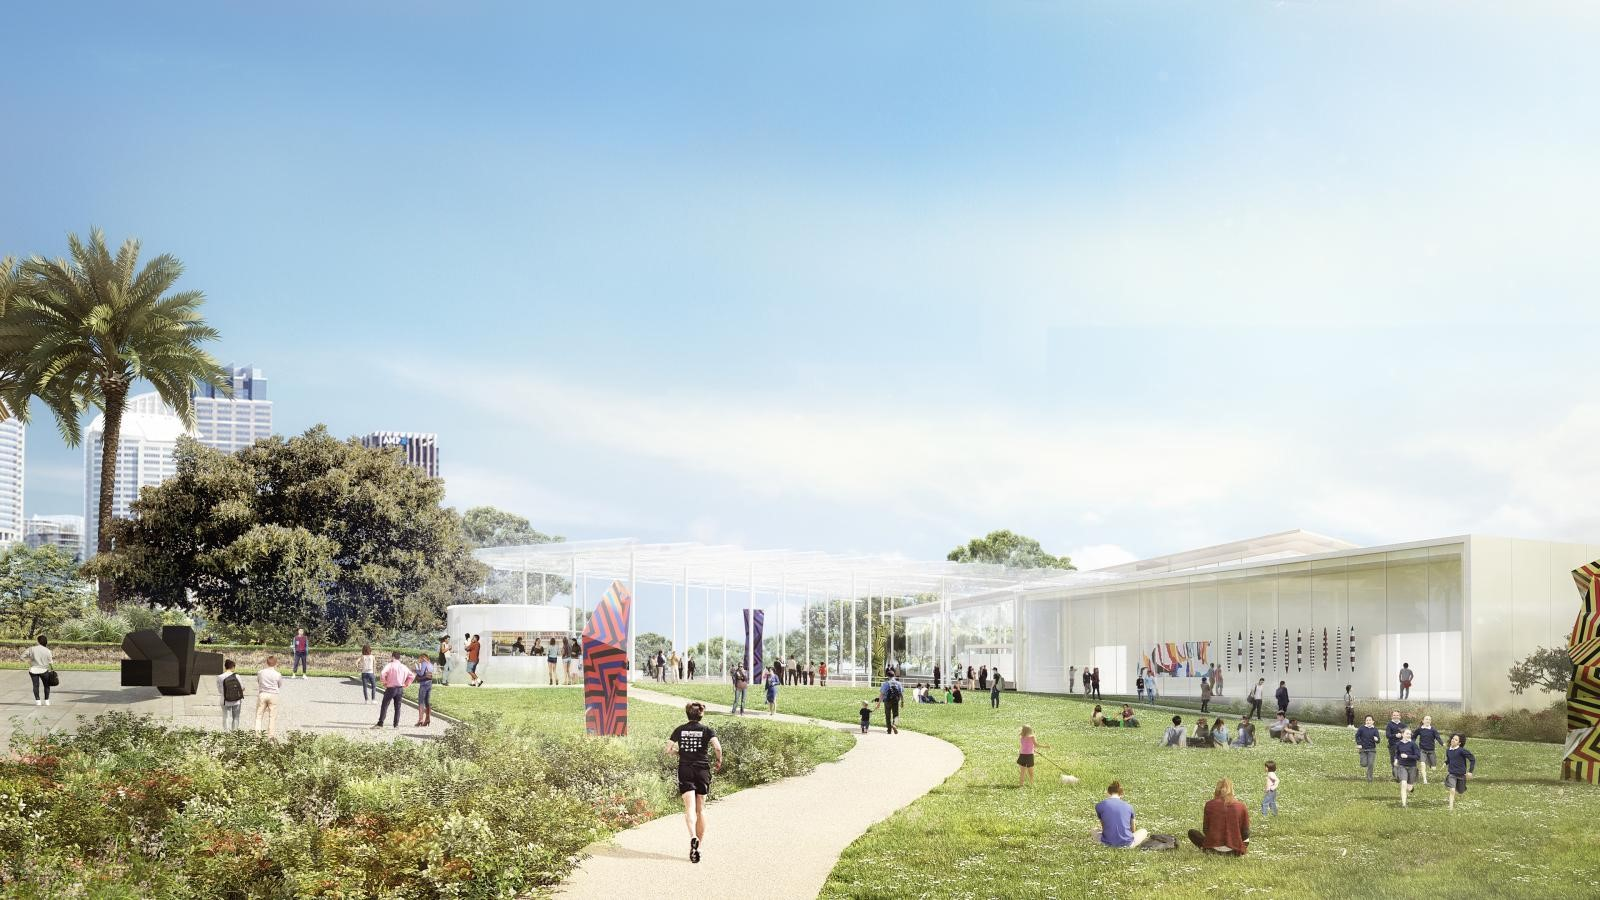 New Images For Art Gallery Of South Wales Expansion In Sydney revealed by SANAA - Sheet4